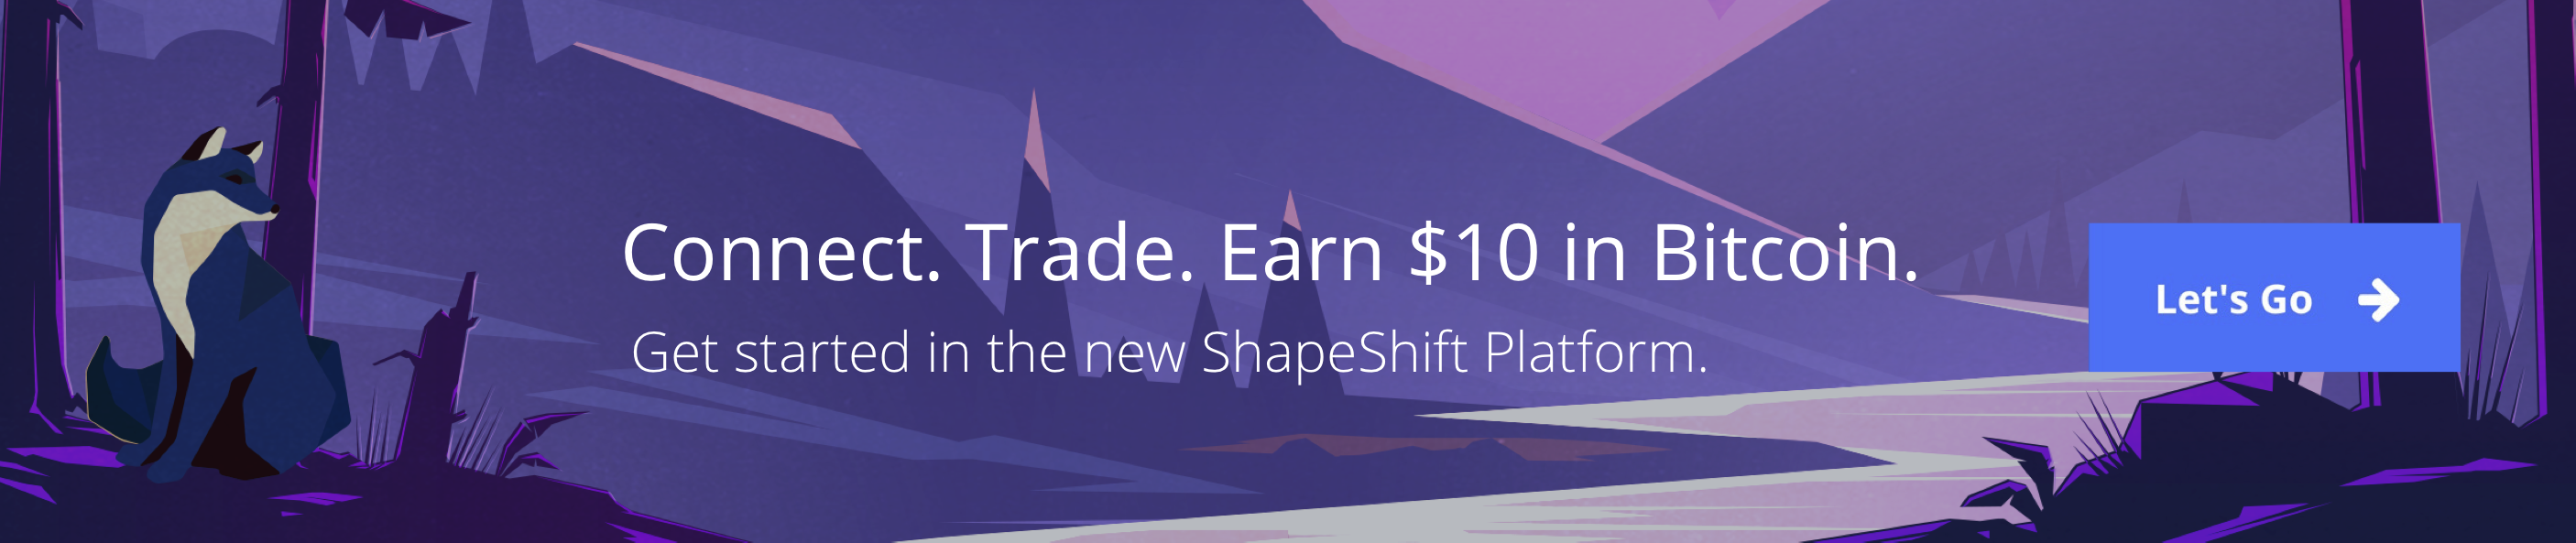 We are making it simple for first-time traders to get free bitcoin in the ShapeShift Platform. Follow the steps to qualify.